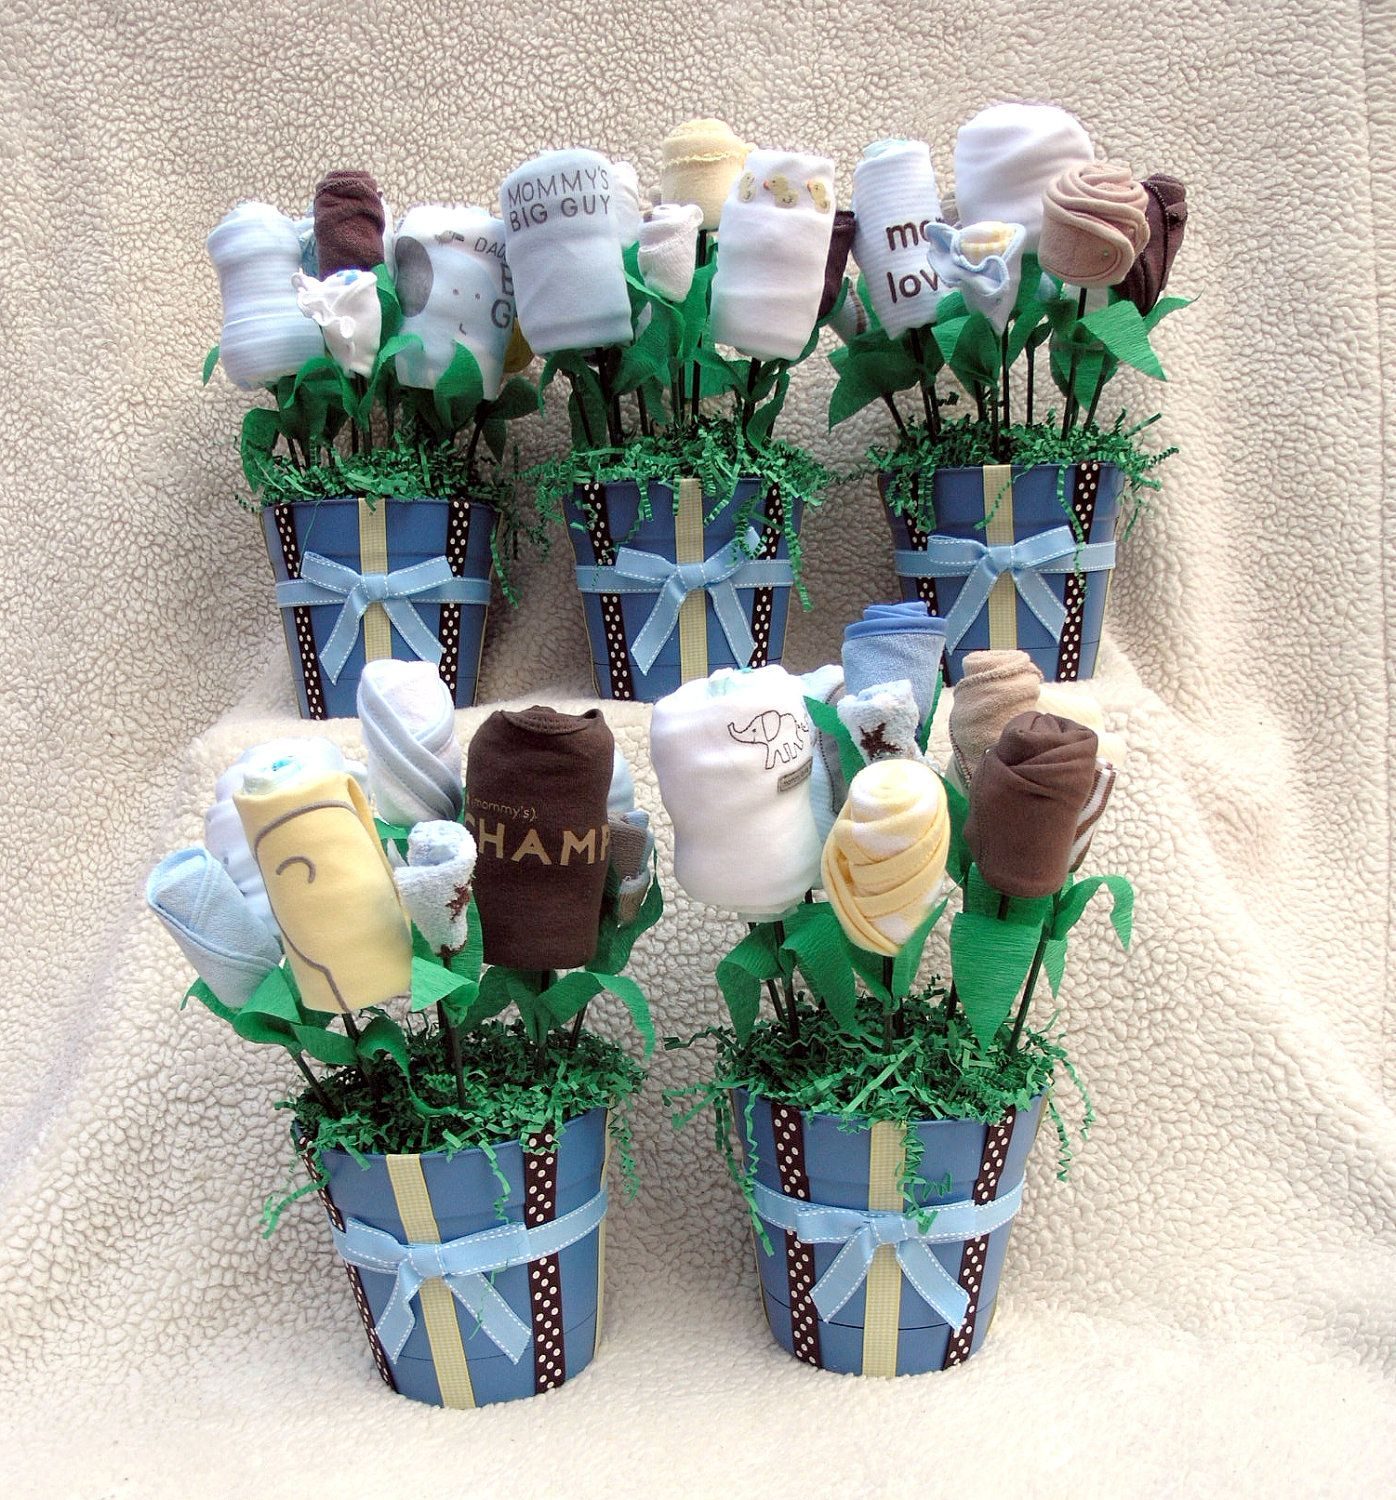 Baby Boy Shower Decorations Part - 24: 5 Baby Shower Decorations For A Baby Boy Shower. $245.00, Via Etsy.